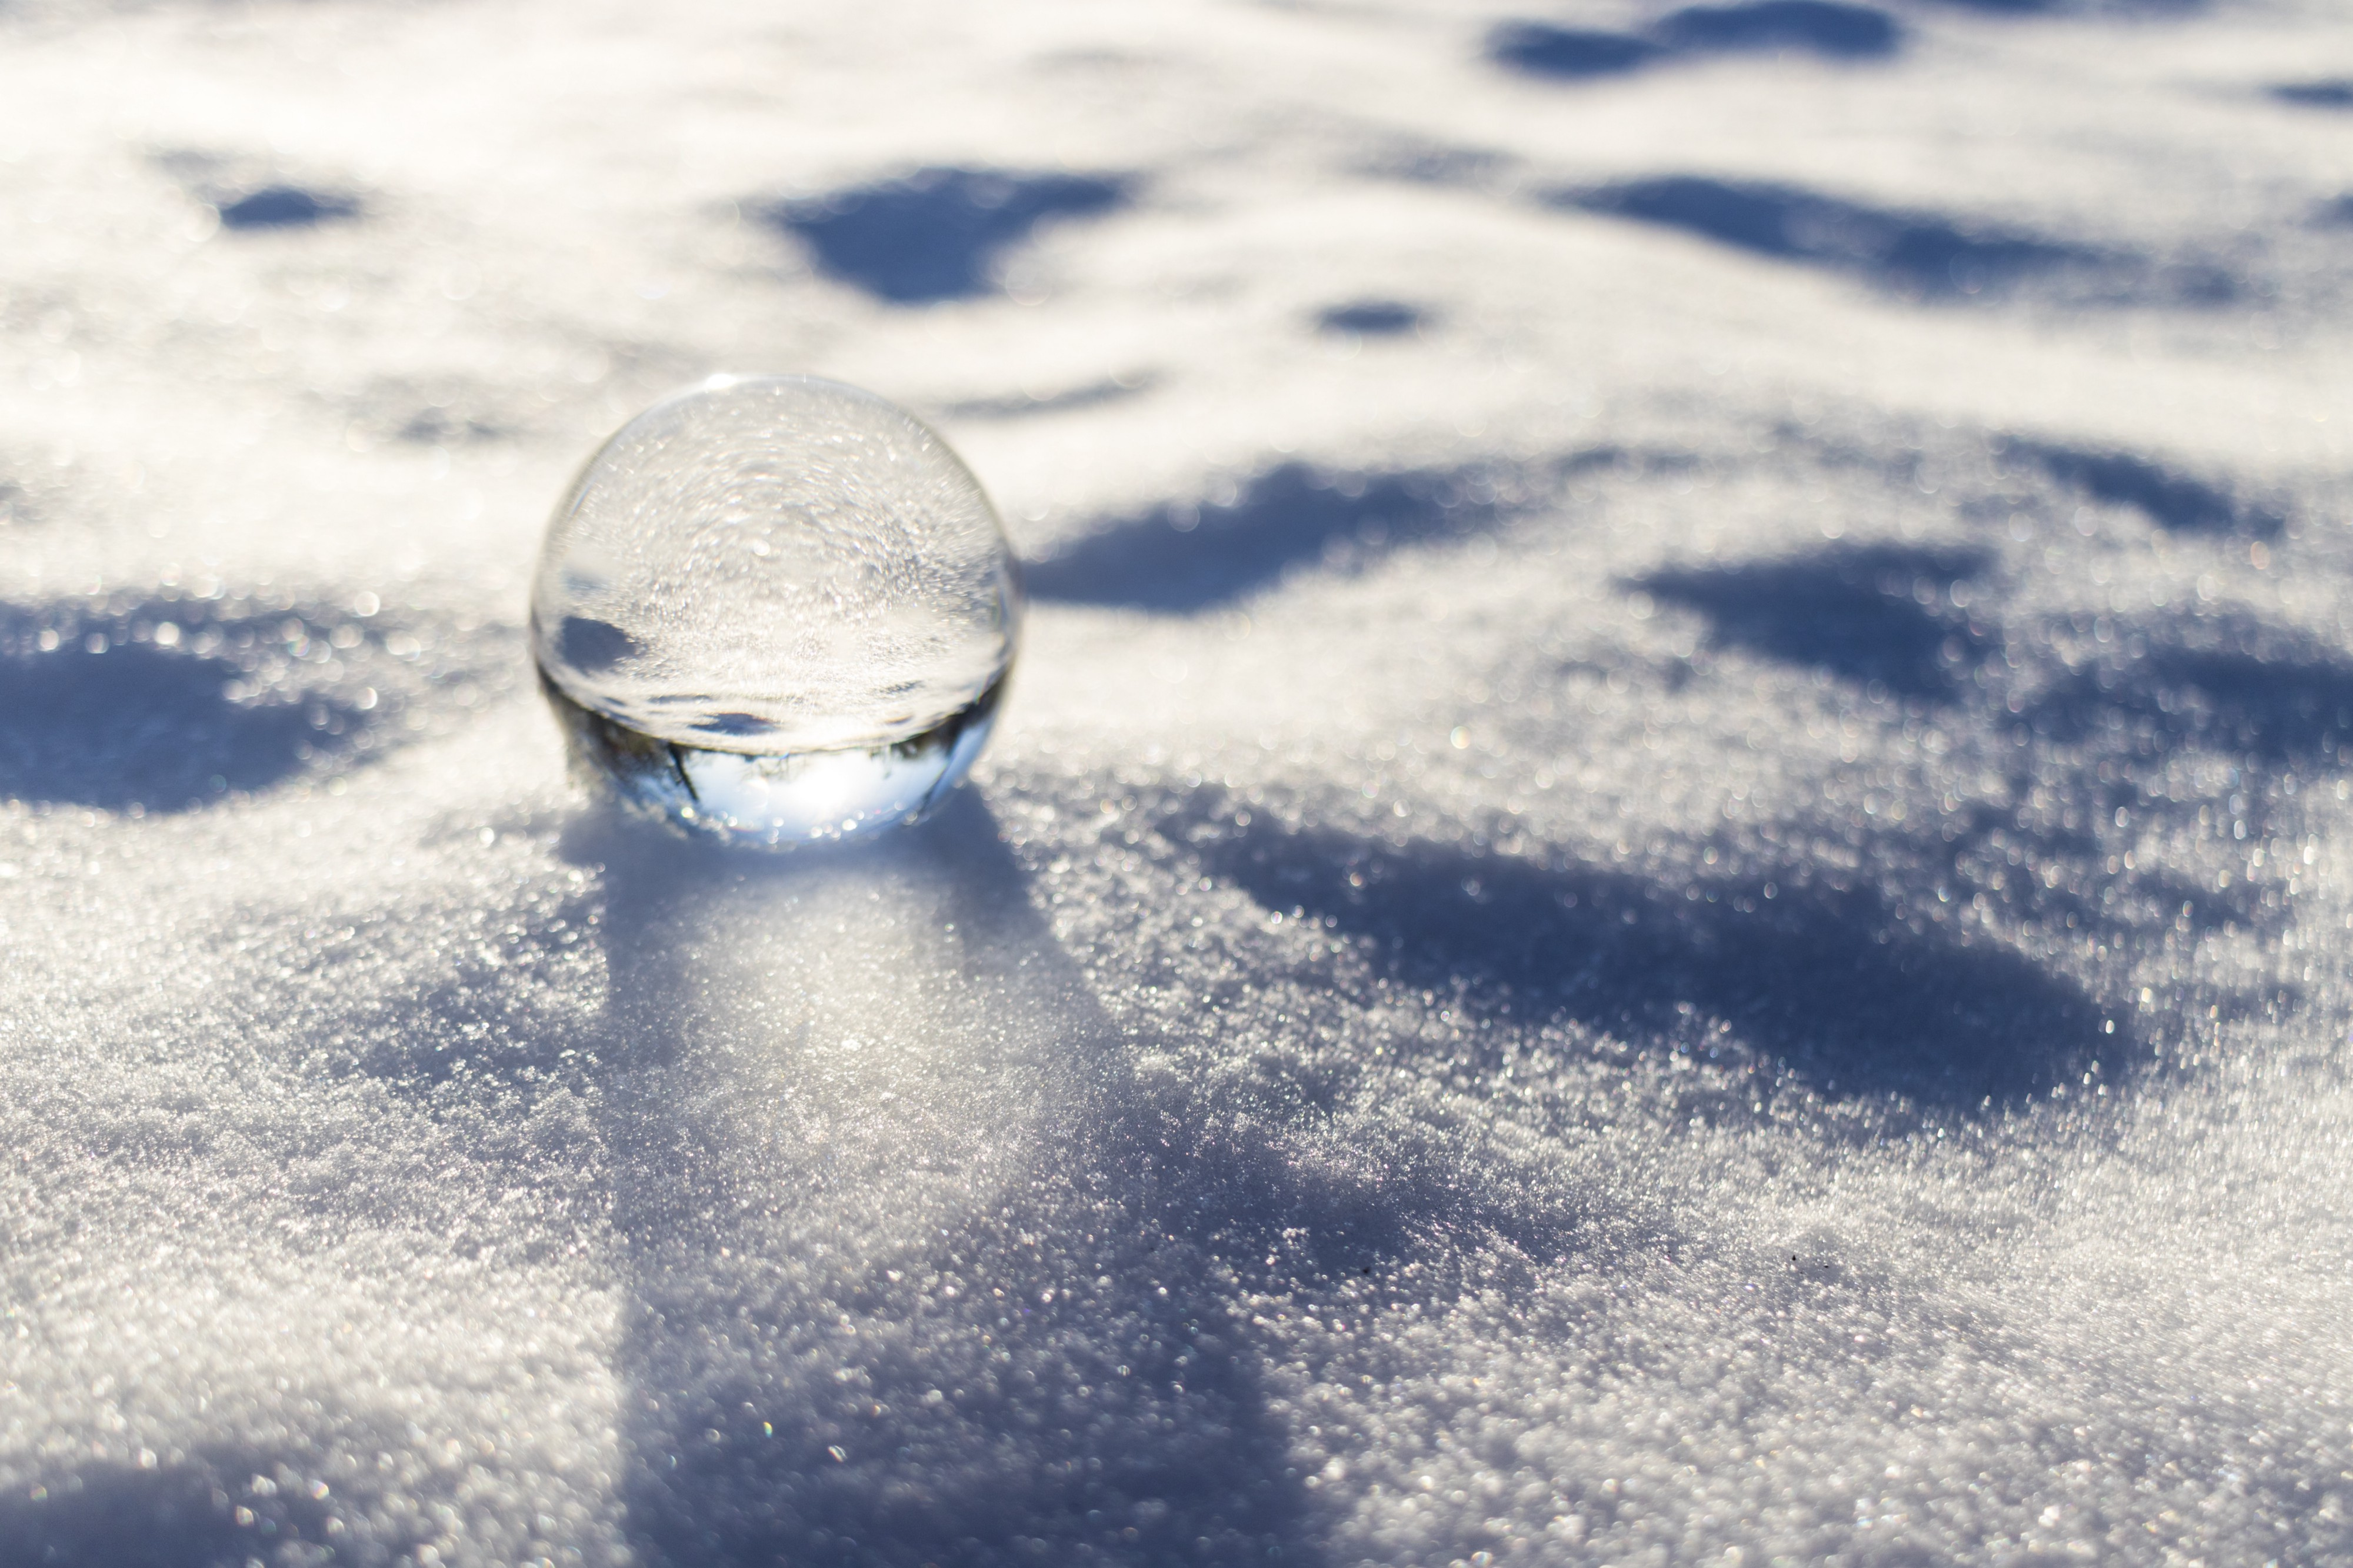 A glass or ice ball sits on a blanket of snow.